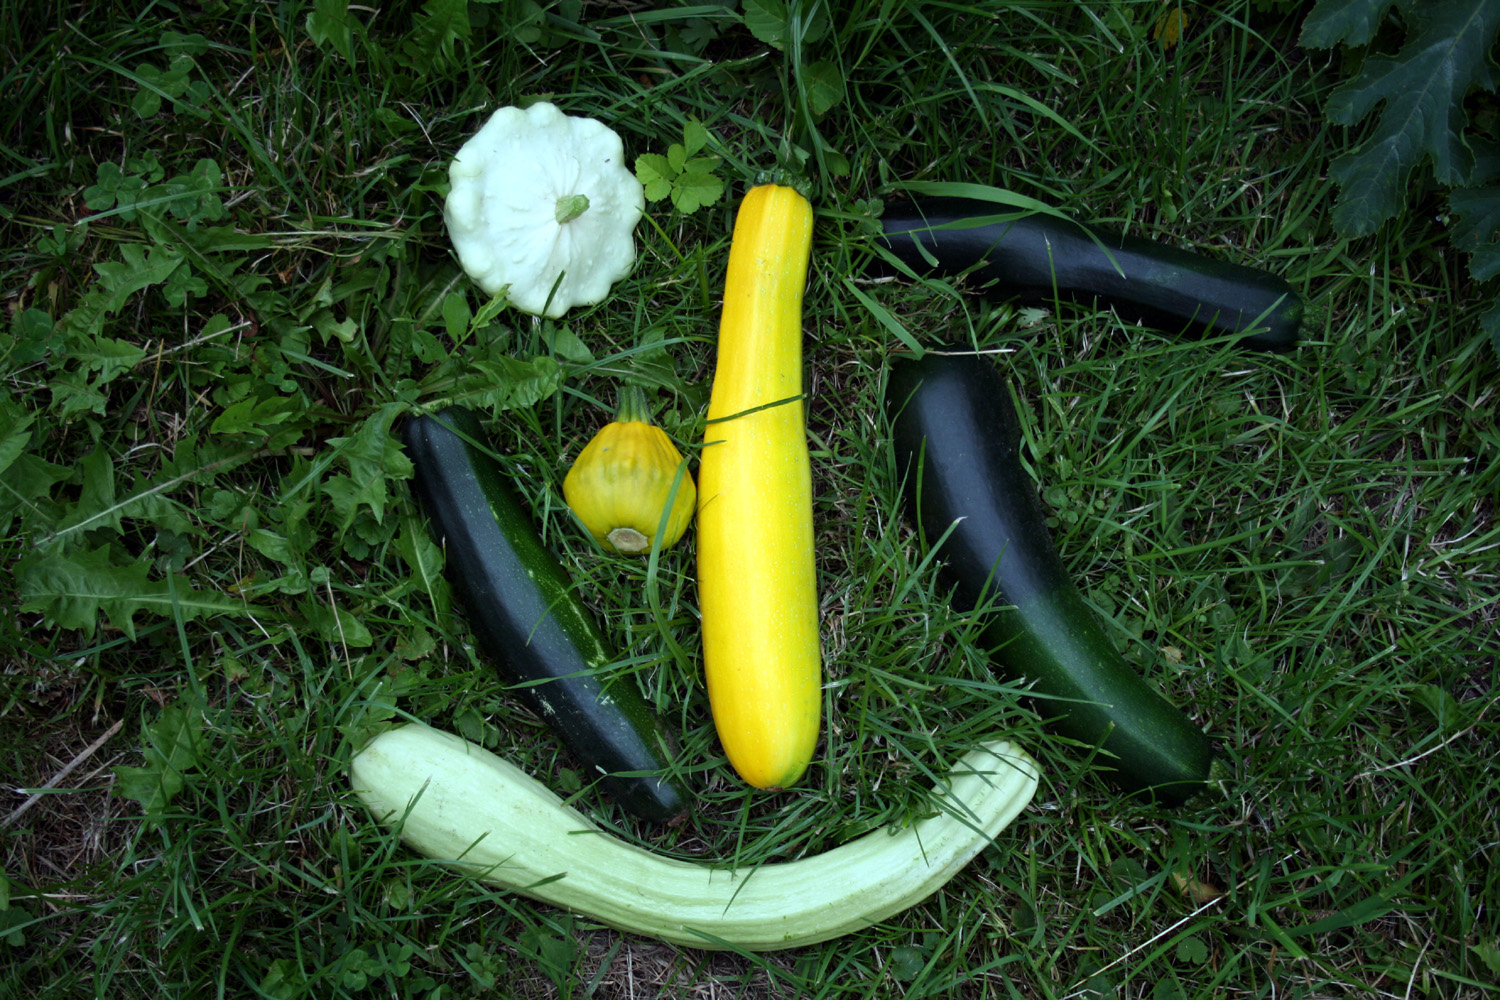 Several different kinds of zucchini and pattypan squash. Source image: Wikipedia